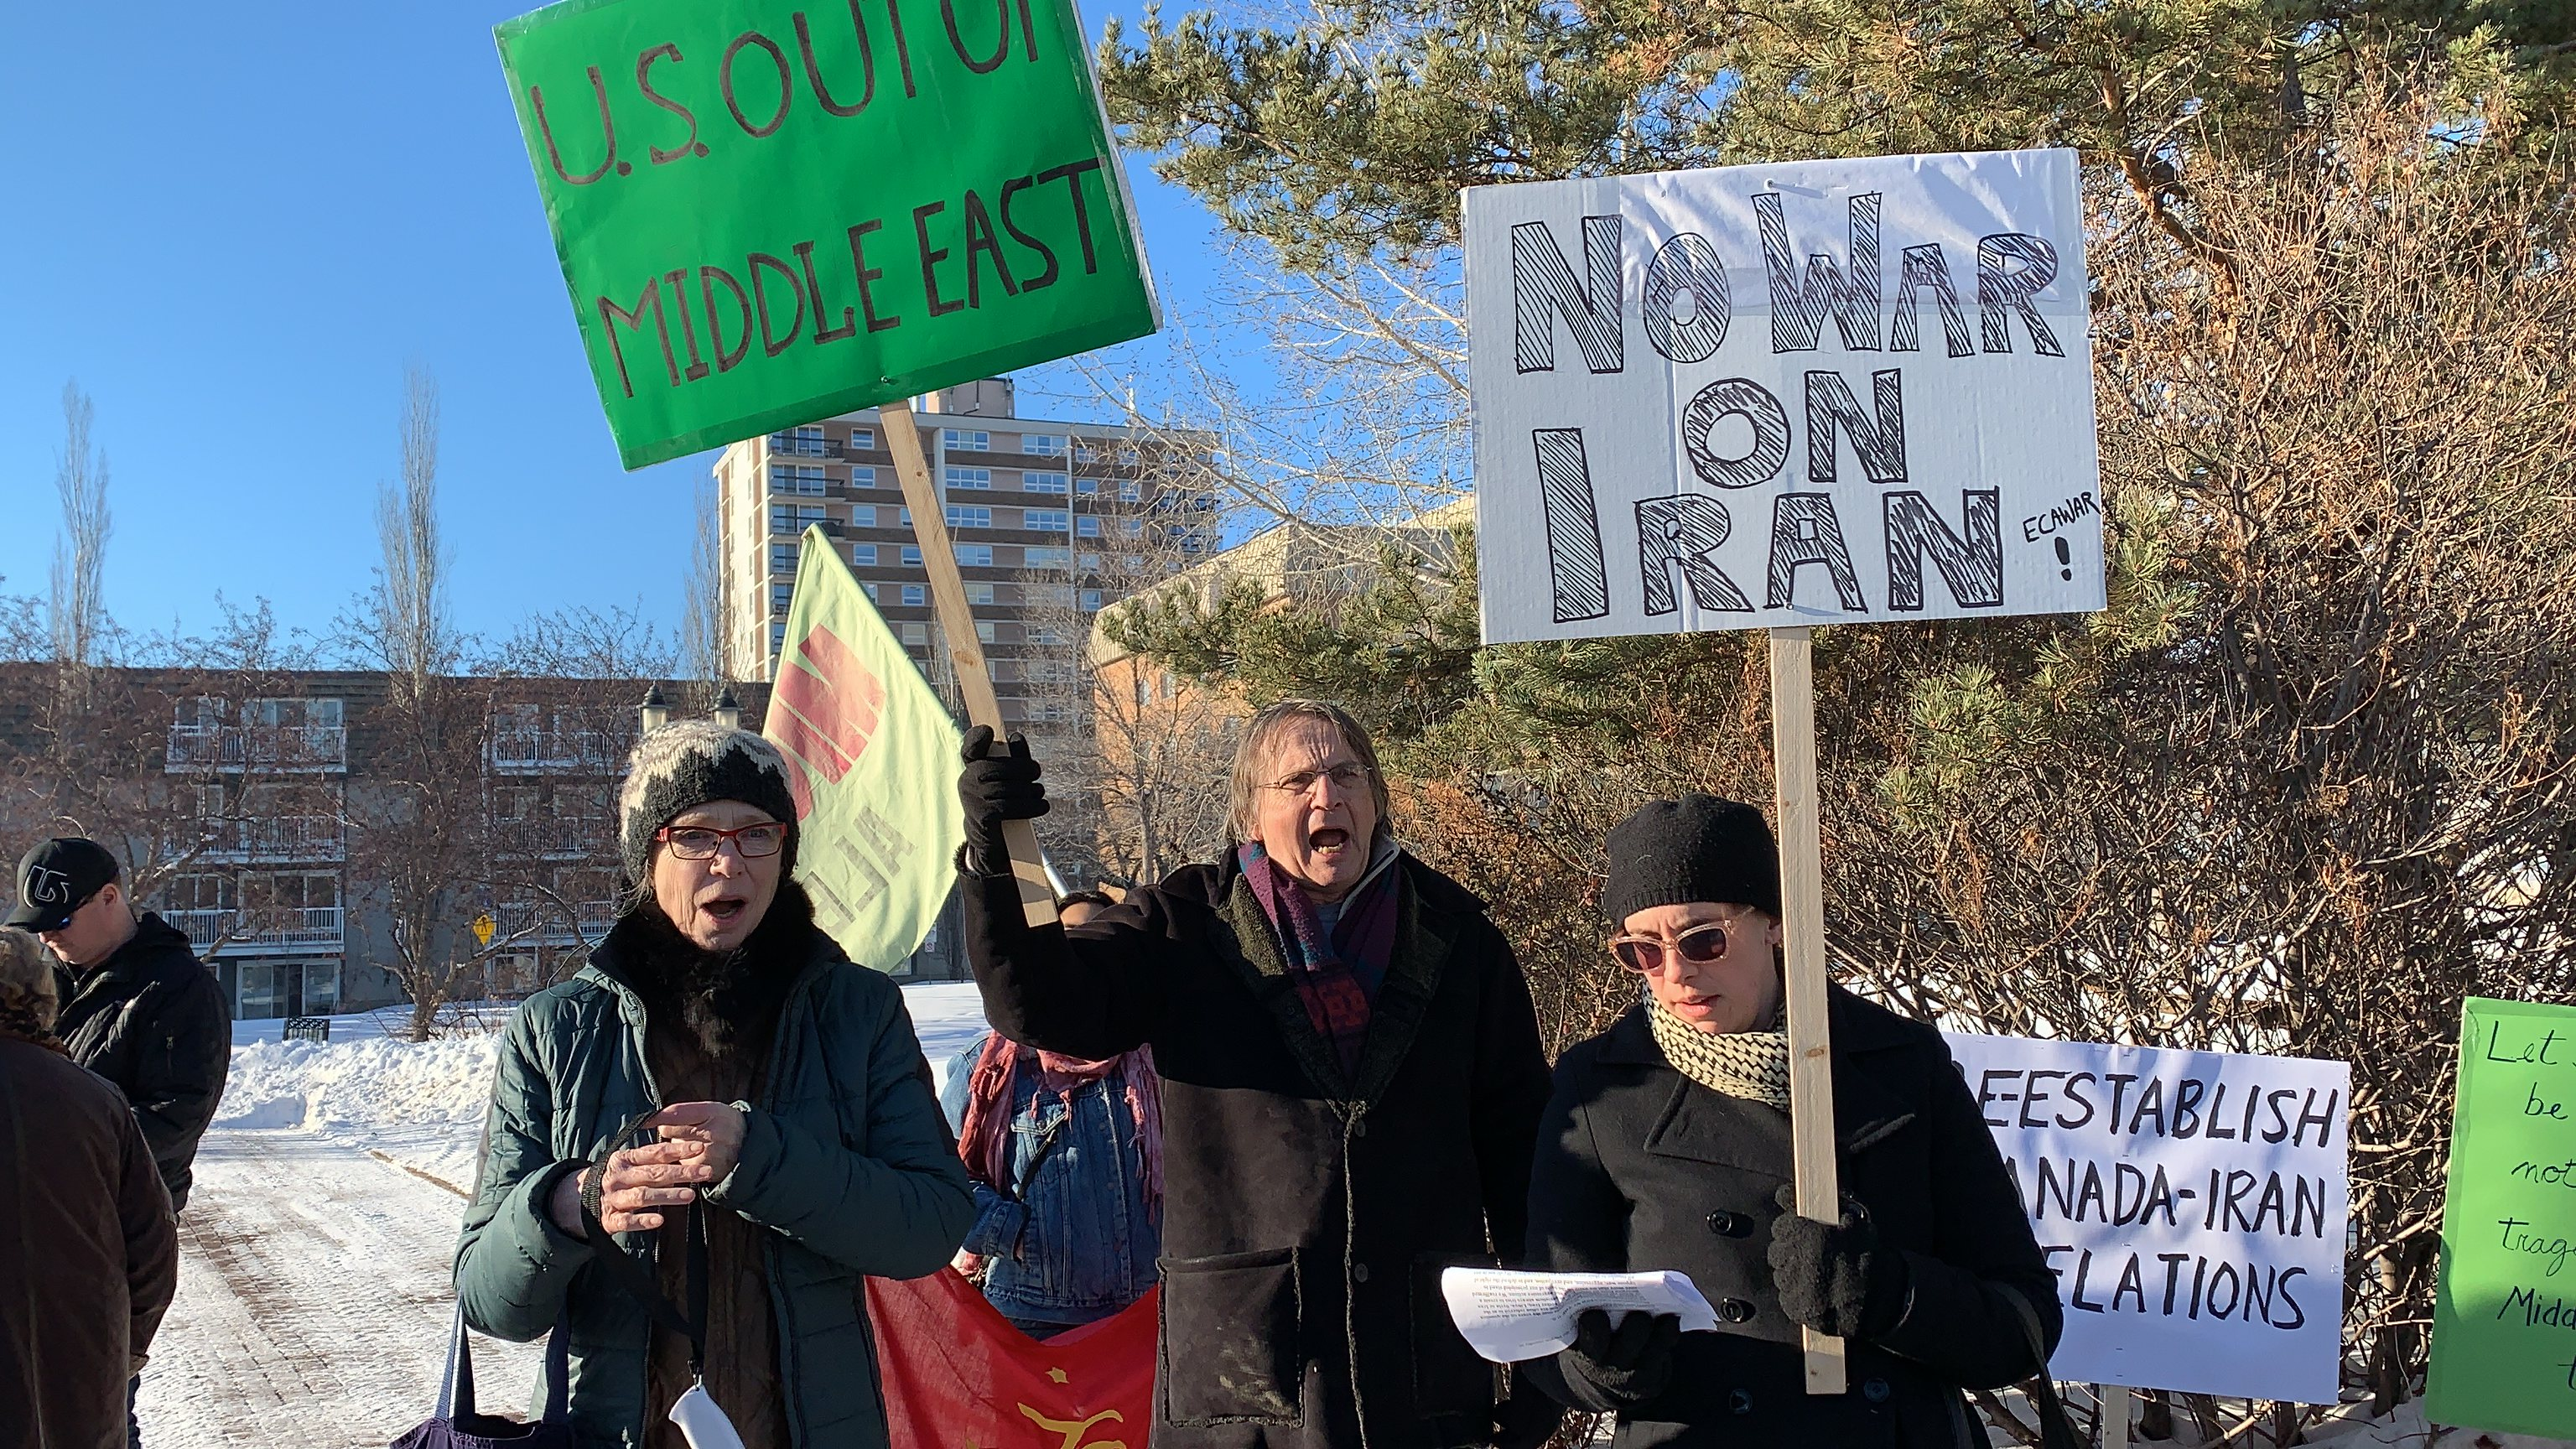 No War On Iran - Global Day of Action - Edmonton